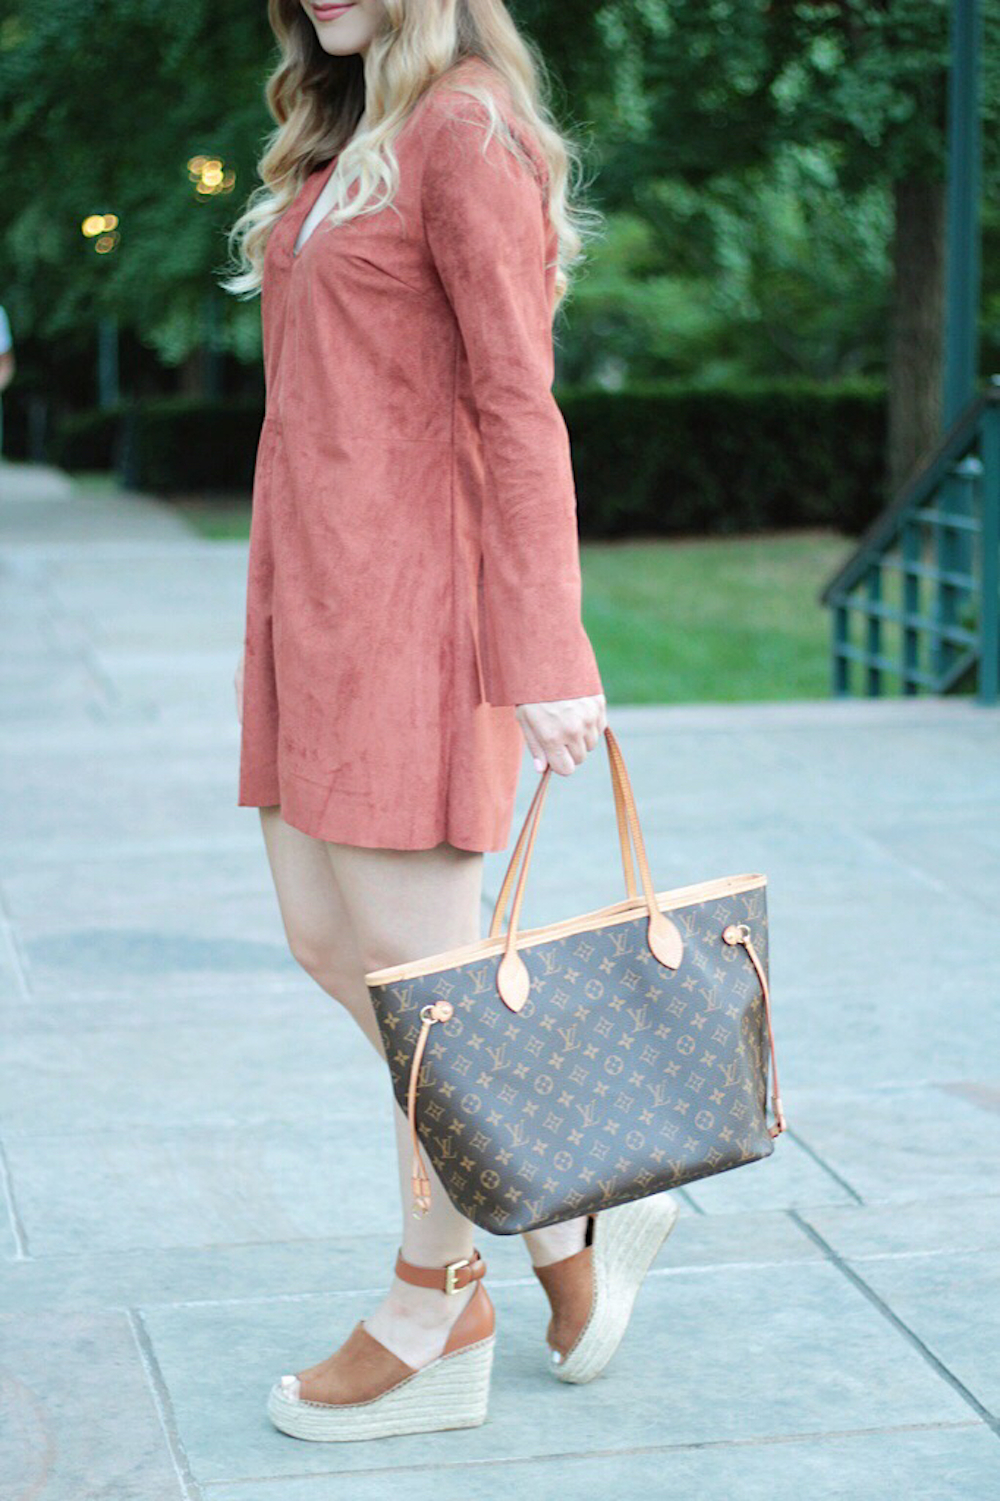 astr suede dress style blogger